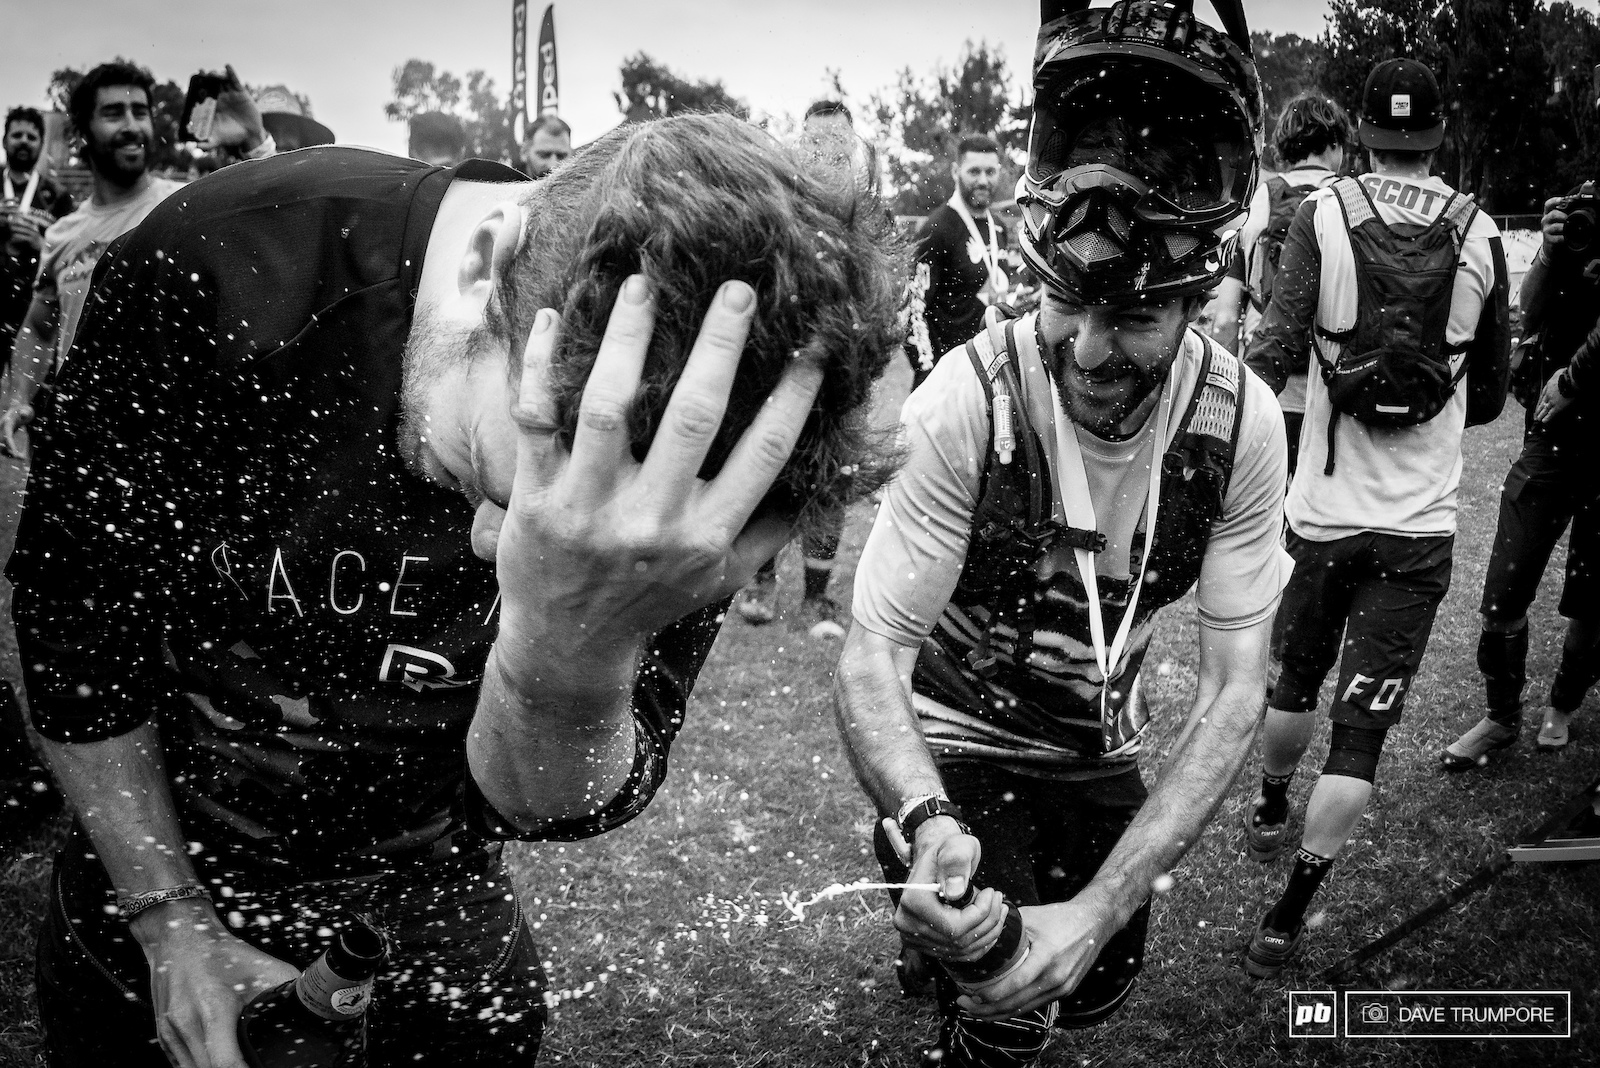 Iago Garay gives Jesse Melamed a cold beer shower to wash off the just in the finish area.